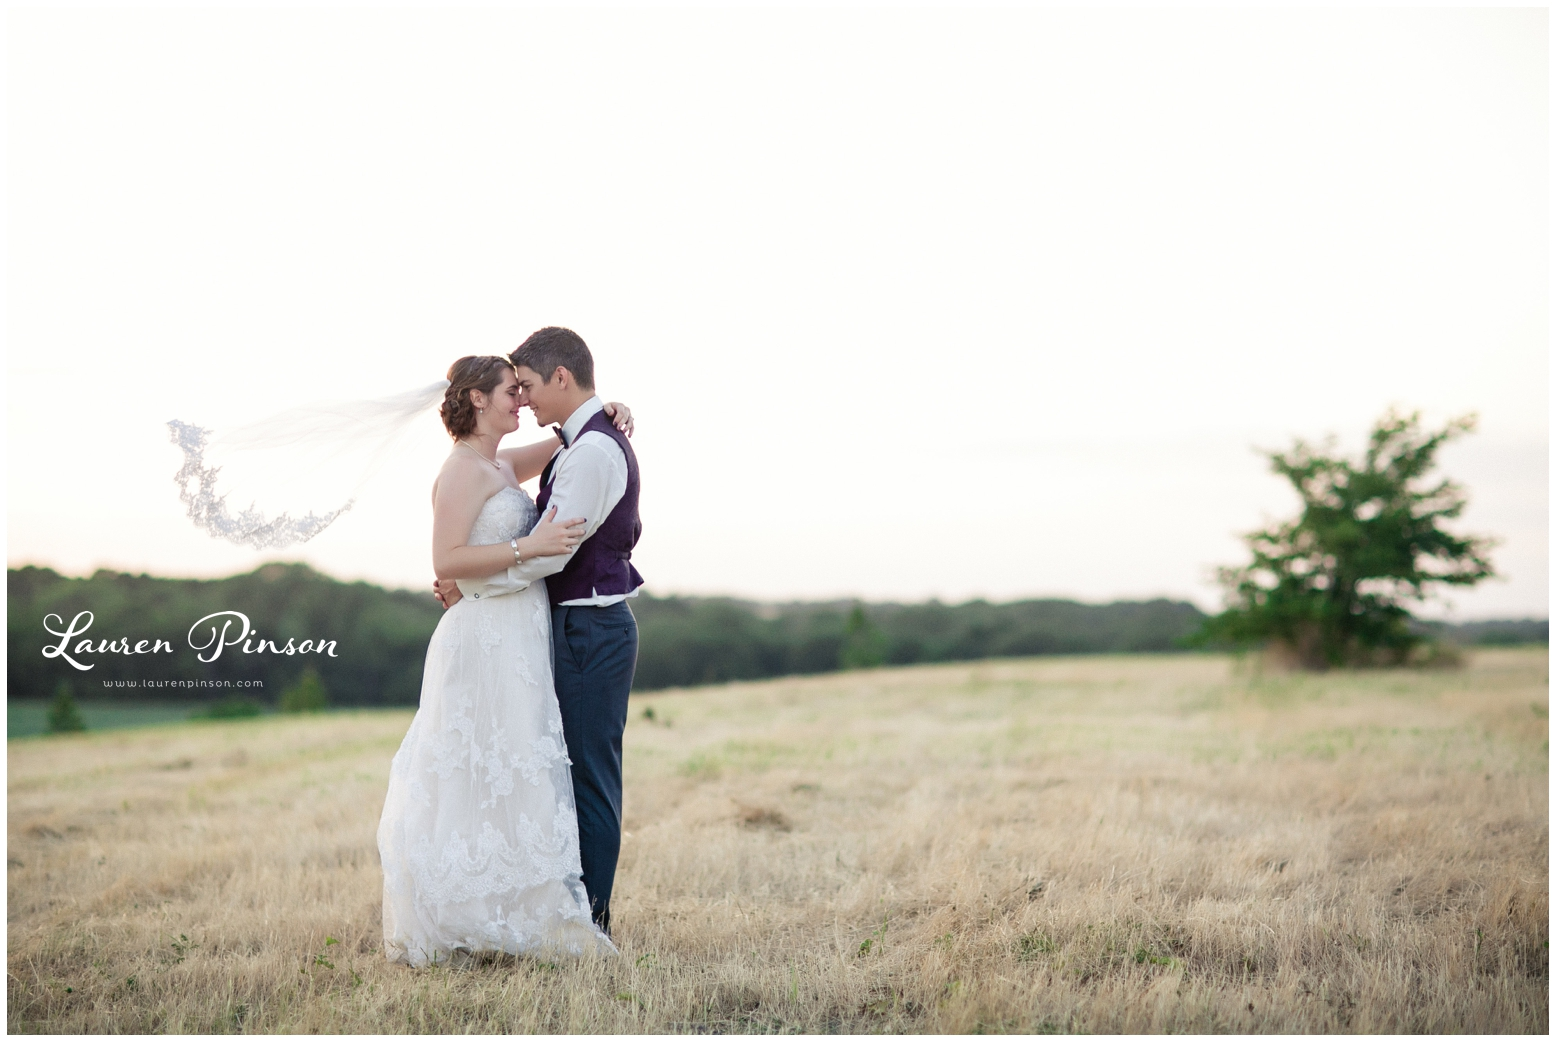 anna-texas-wedding-at-heritage-springs-by-the-springs-events-holly-villes-designs-texas-wedding-photography-mckinney-texas-hill-country-fredericksburg_0291.jpg